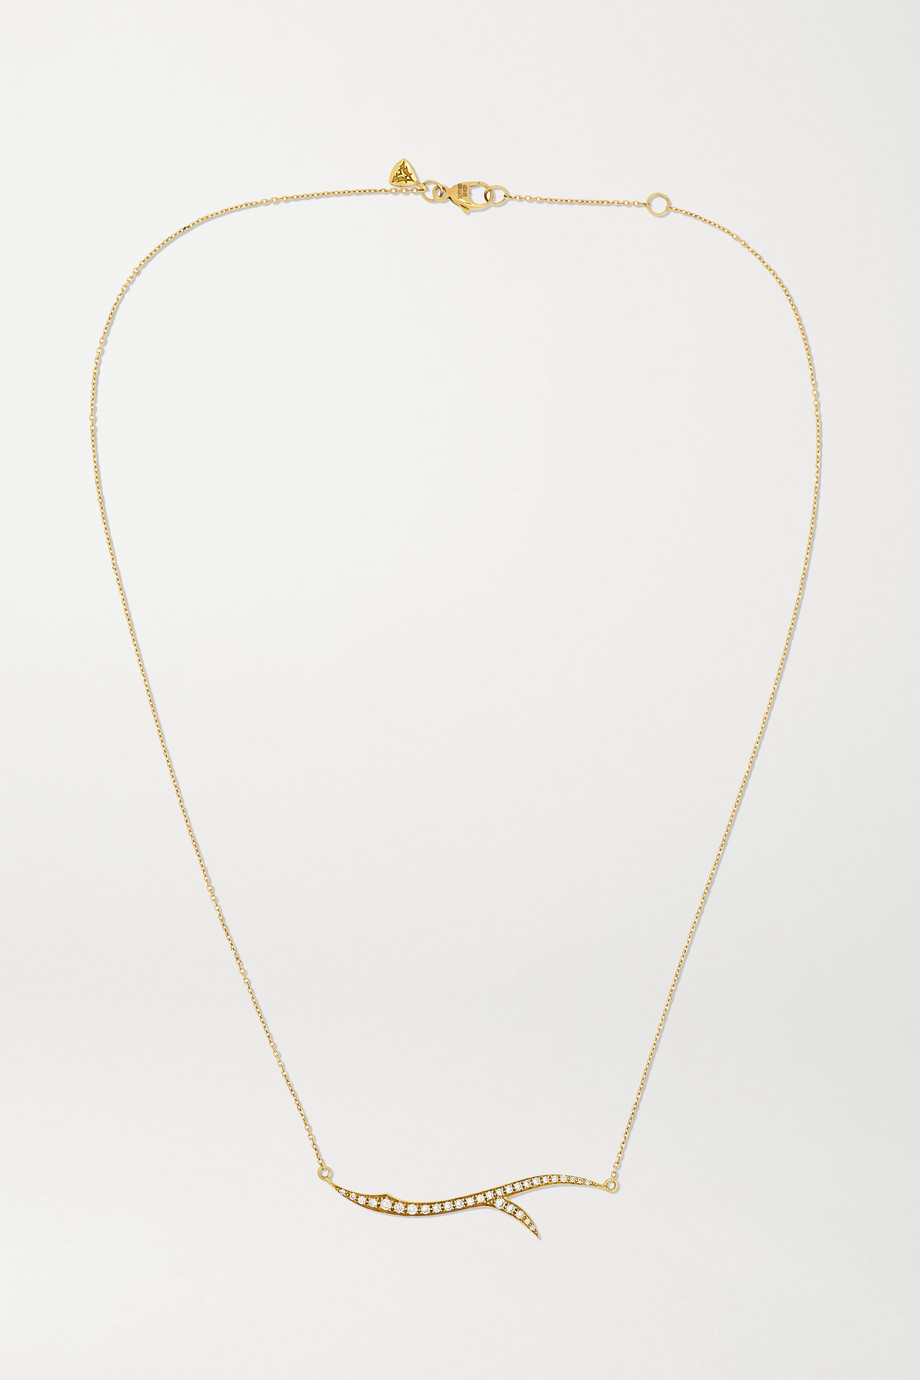 Stephen Webster + NET SUSTAIN Thorn Stem 18-karat recycled gold diamond necklace